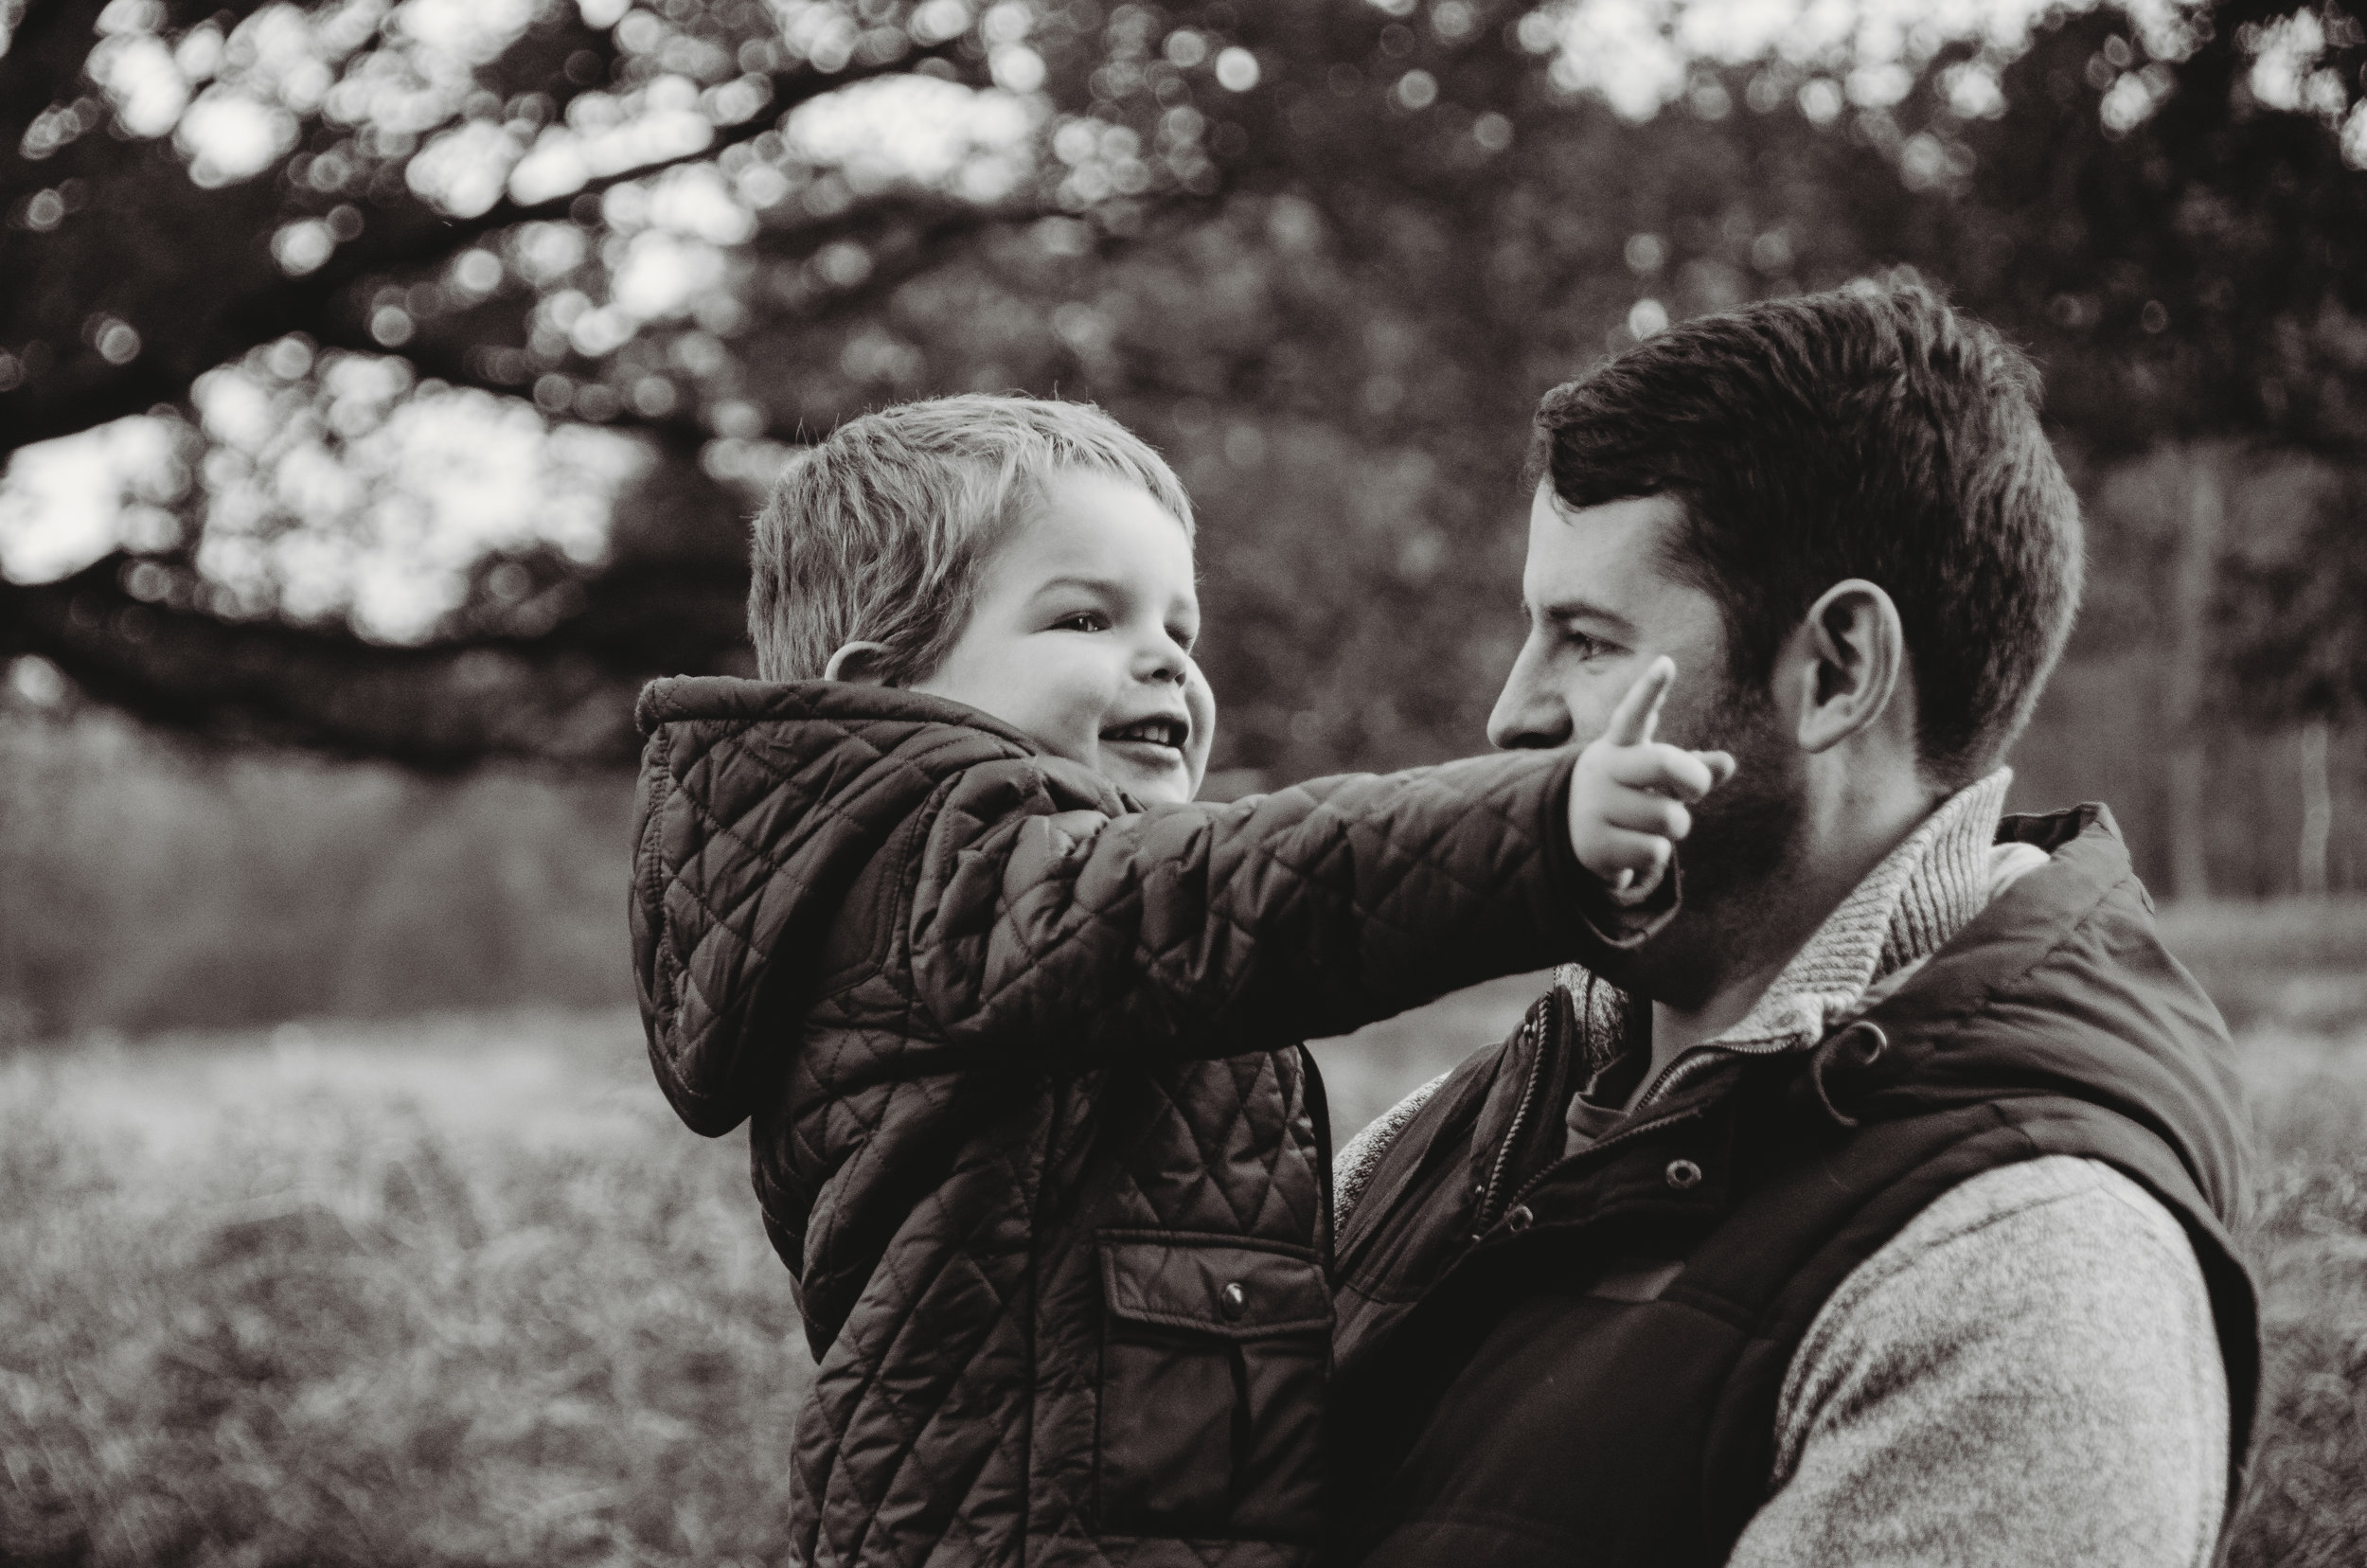 Son and his father by Hampshire Family Photographer Evie Winter